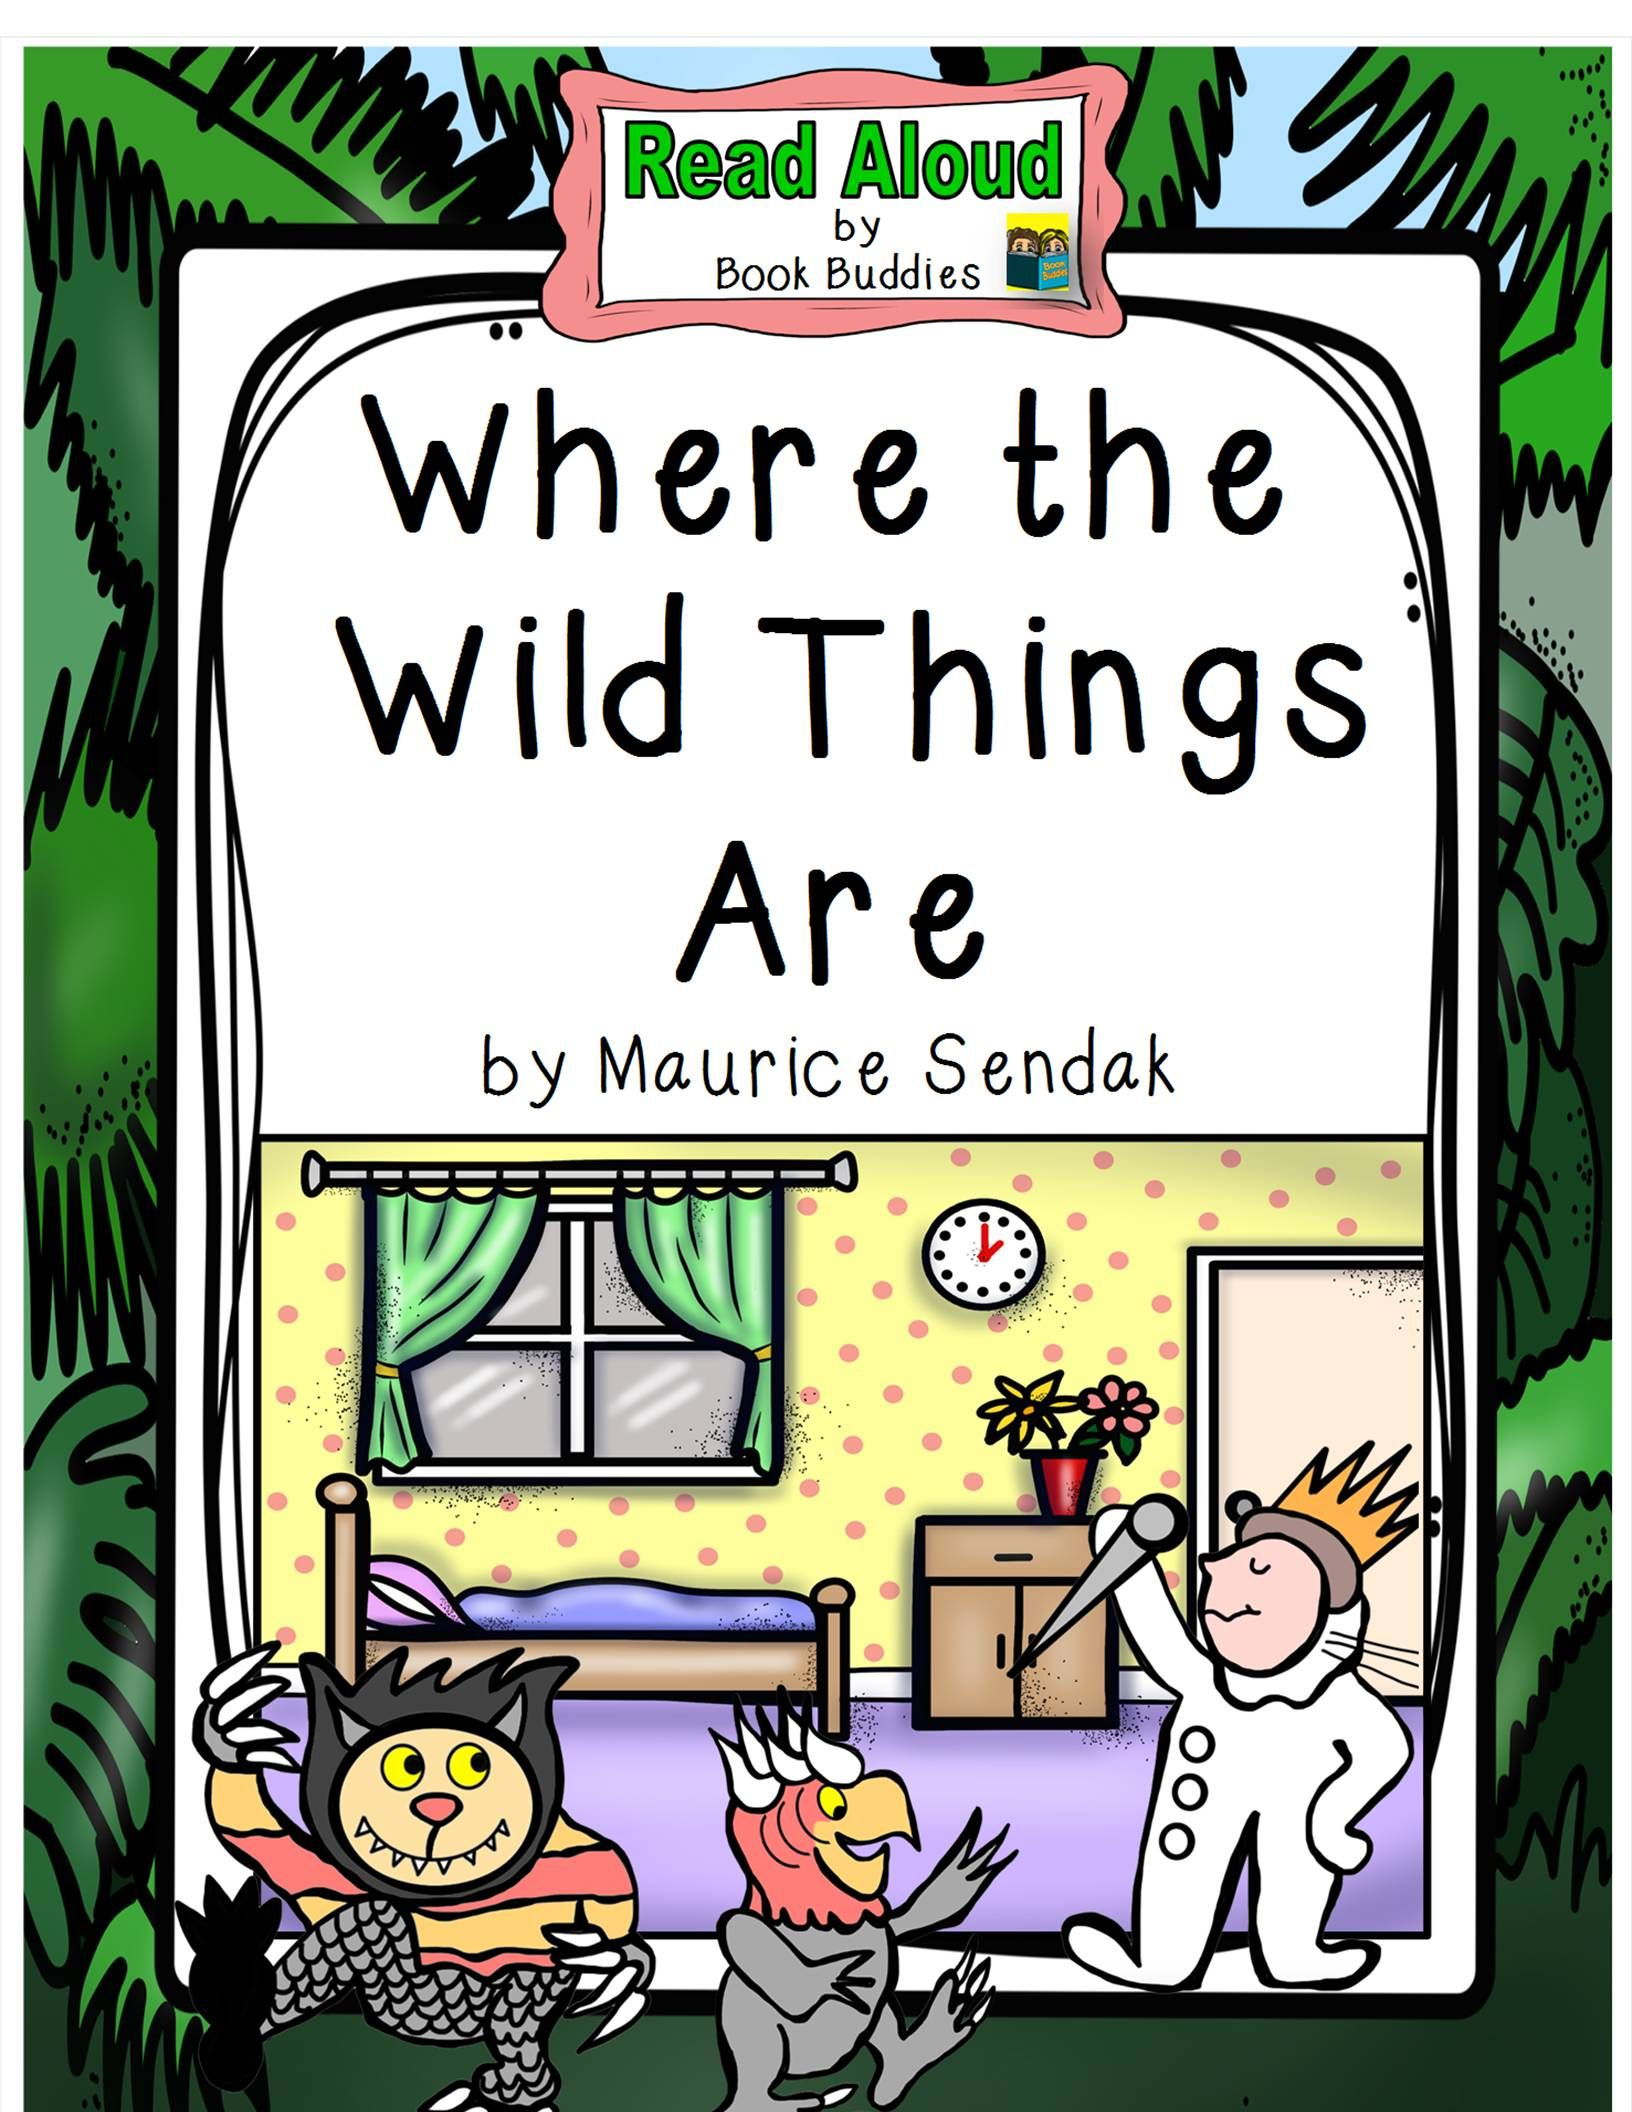 Reading guide for Where the Wild Things Are